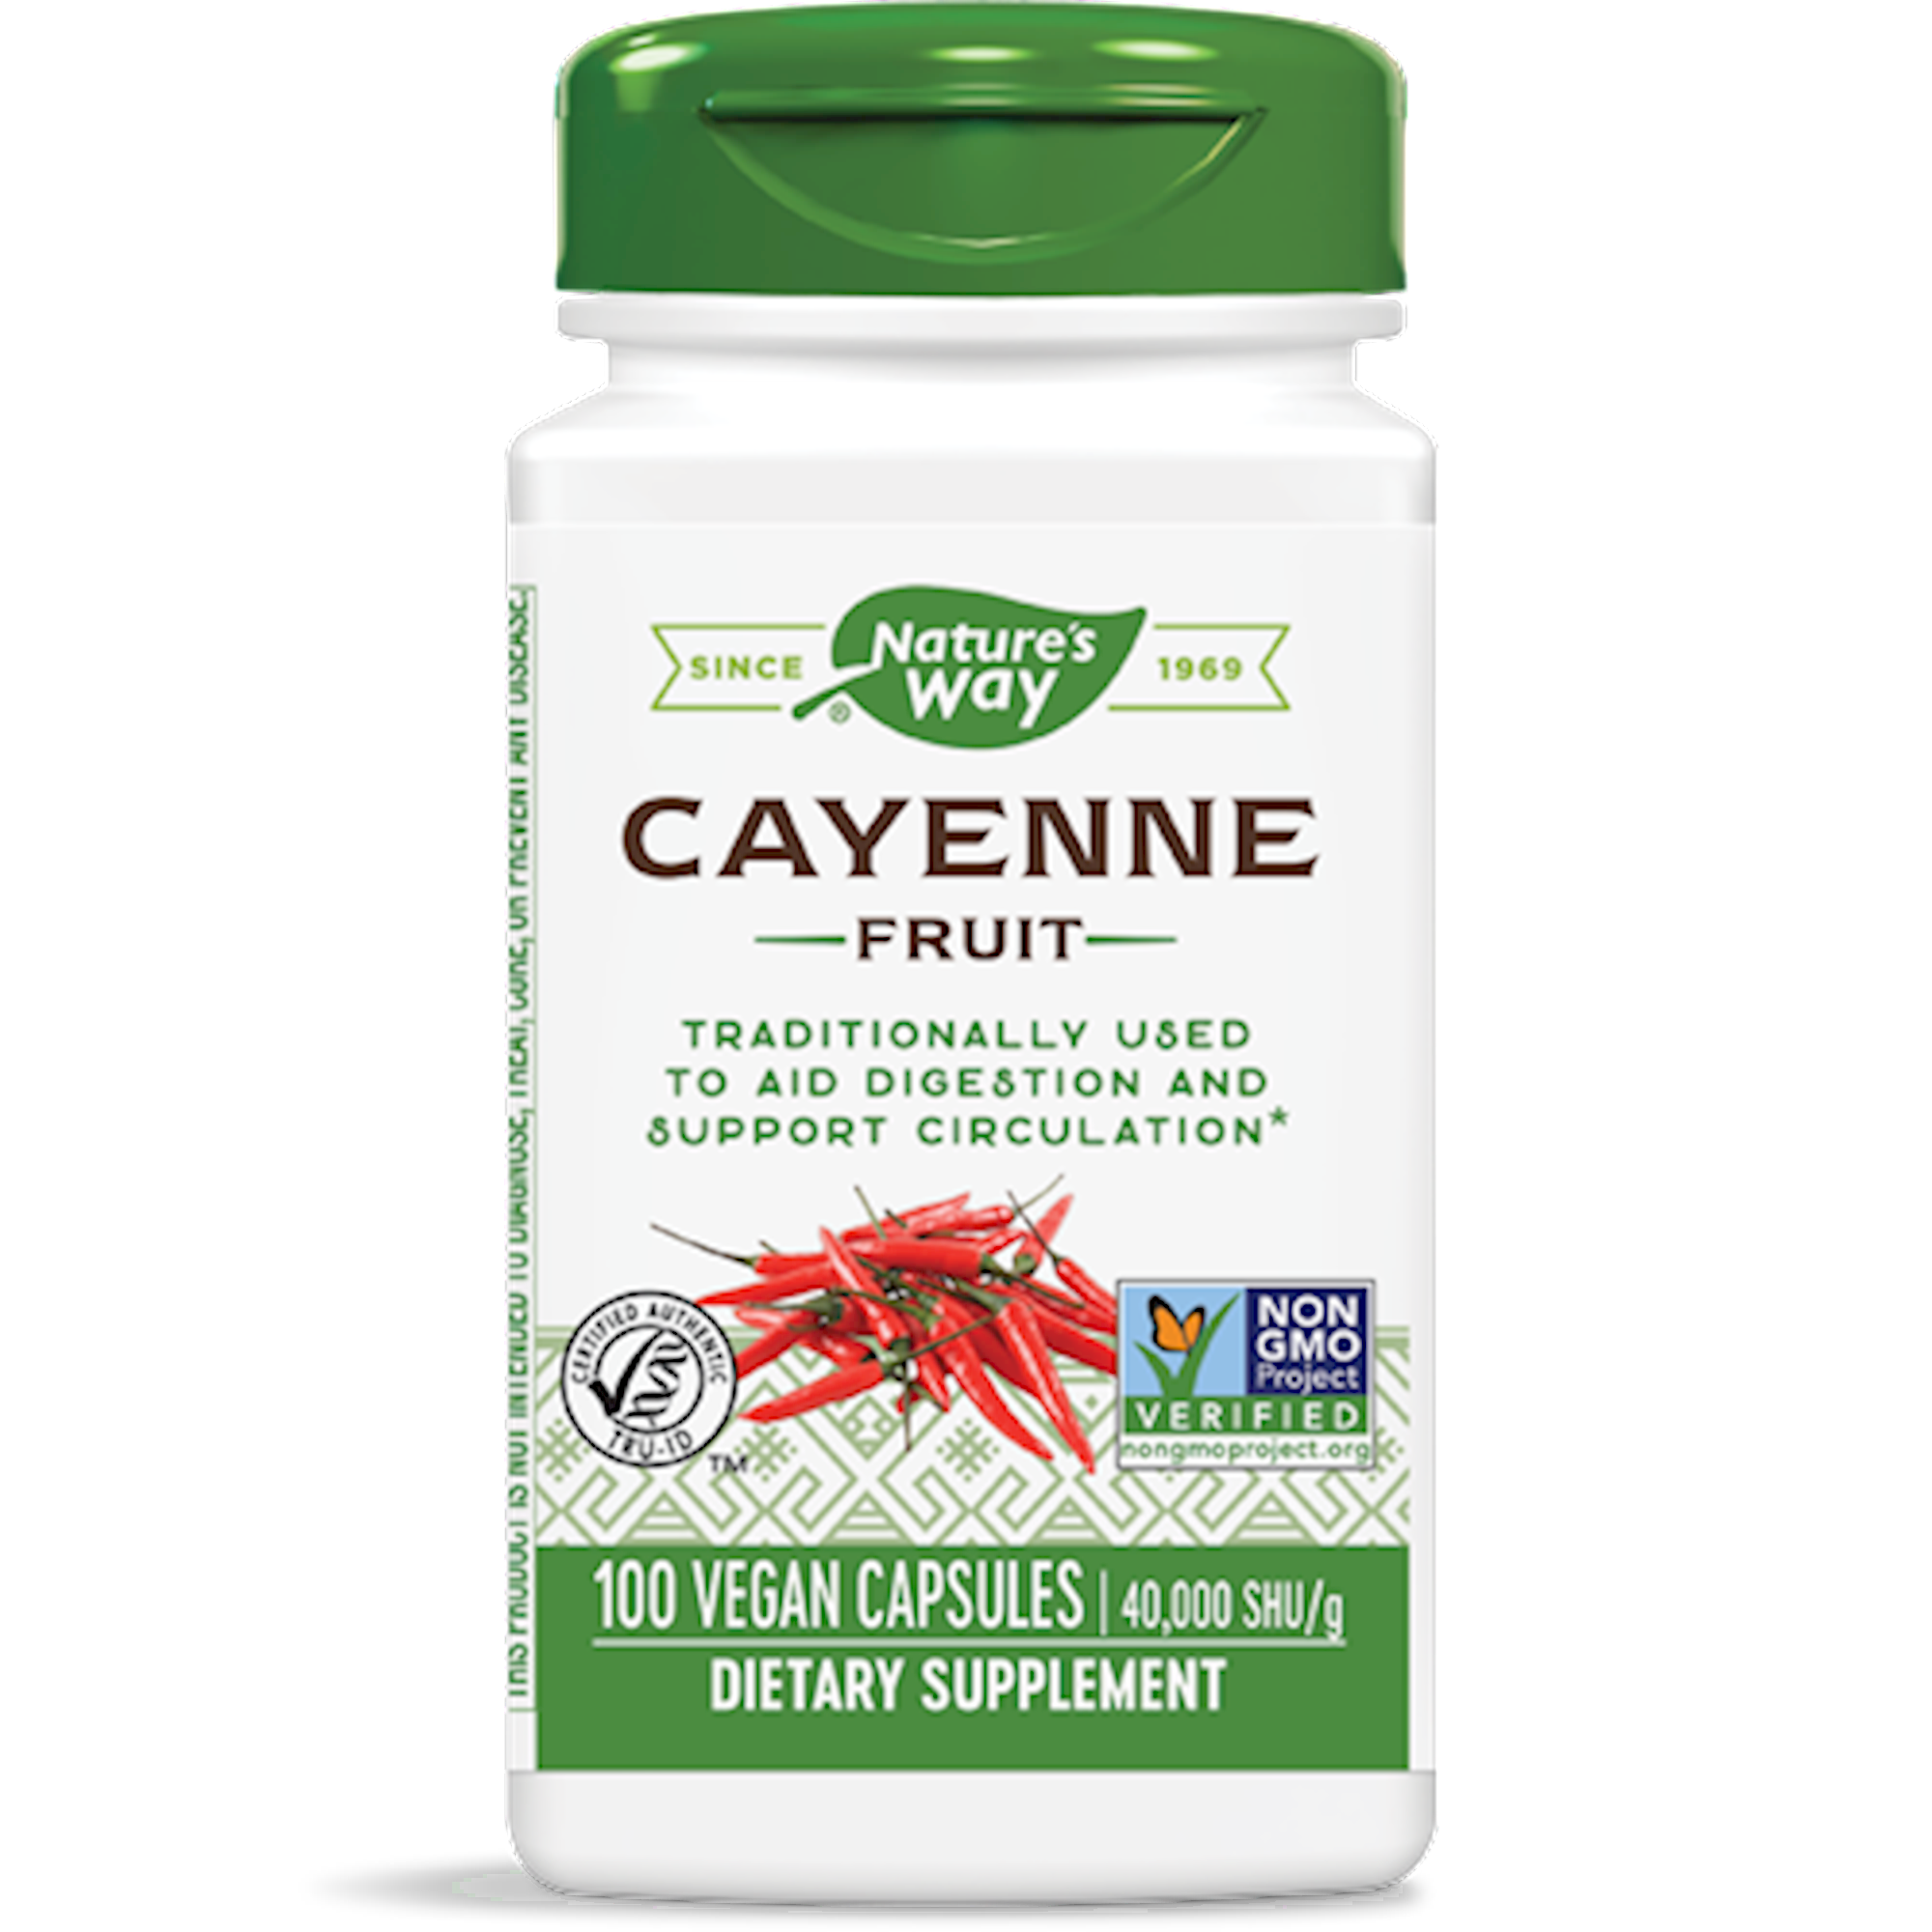 Nature's Way Products Cayenne Pepper 40,000 hu 100 caps